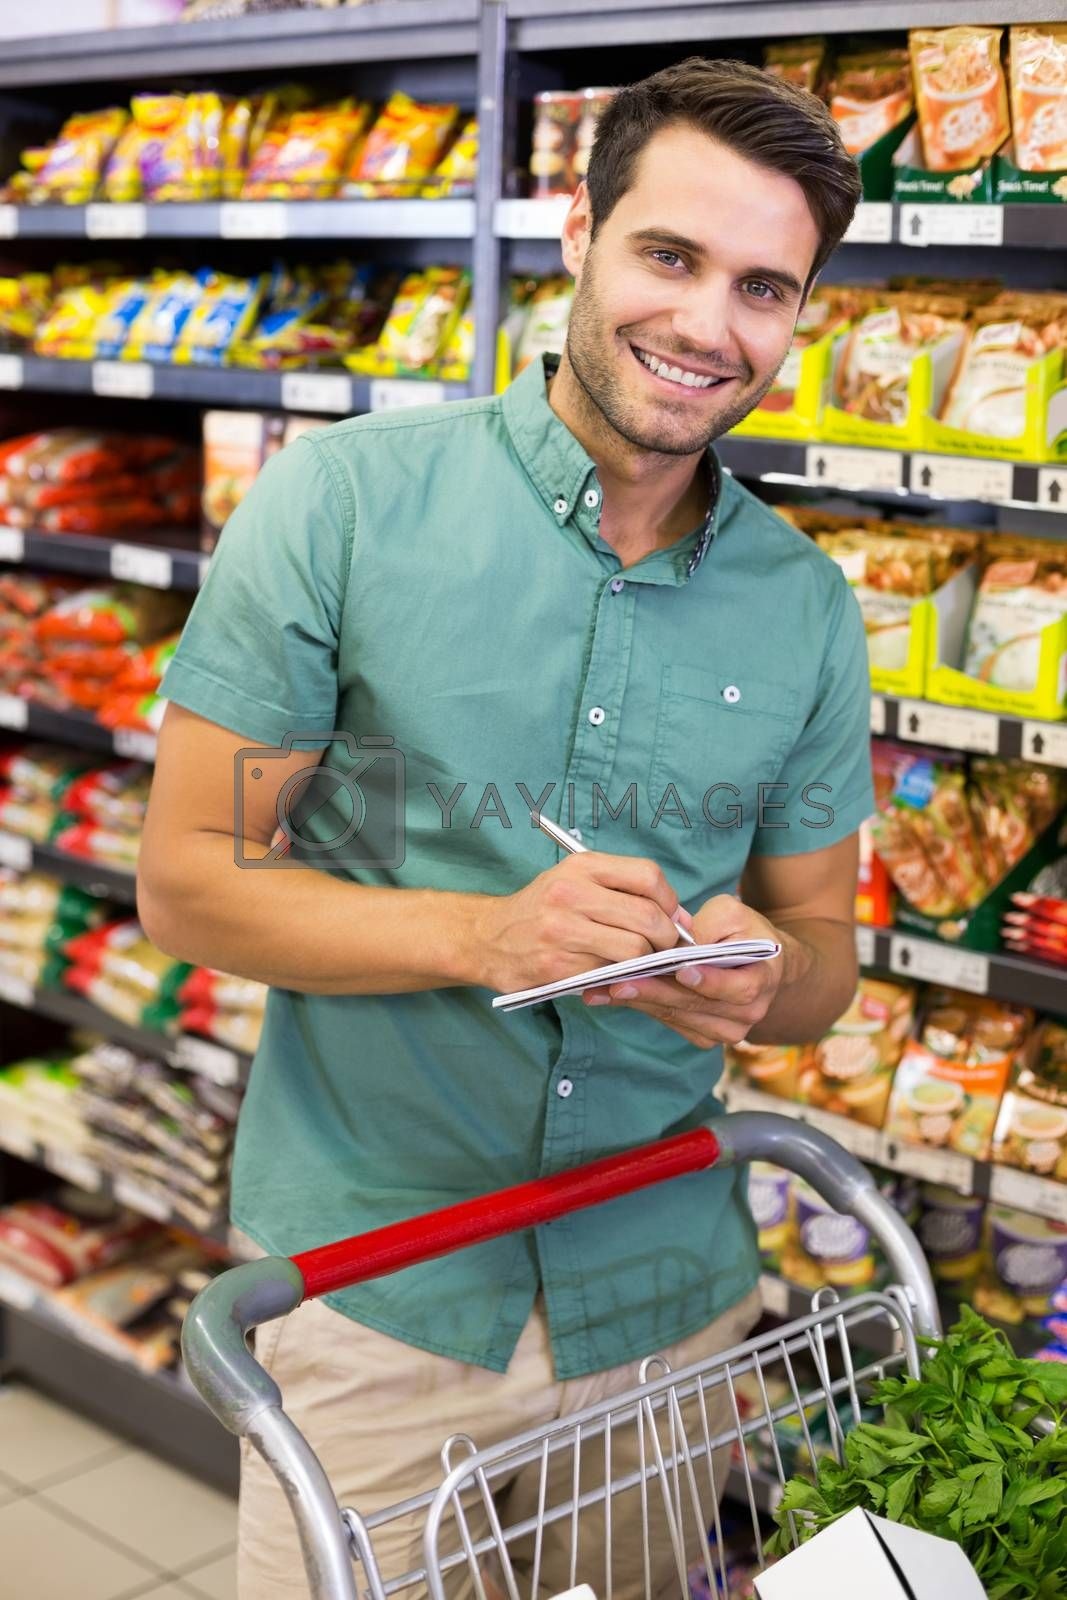 Royalty free image of Portrait of smiling man writing on his notepad in aisle  by Wavebreakmedia